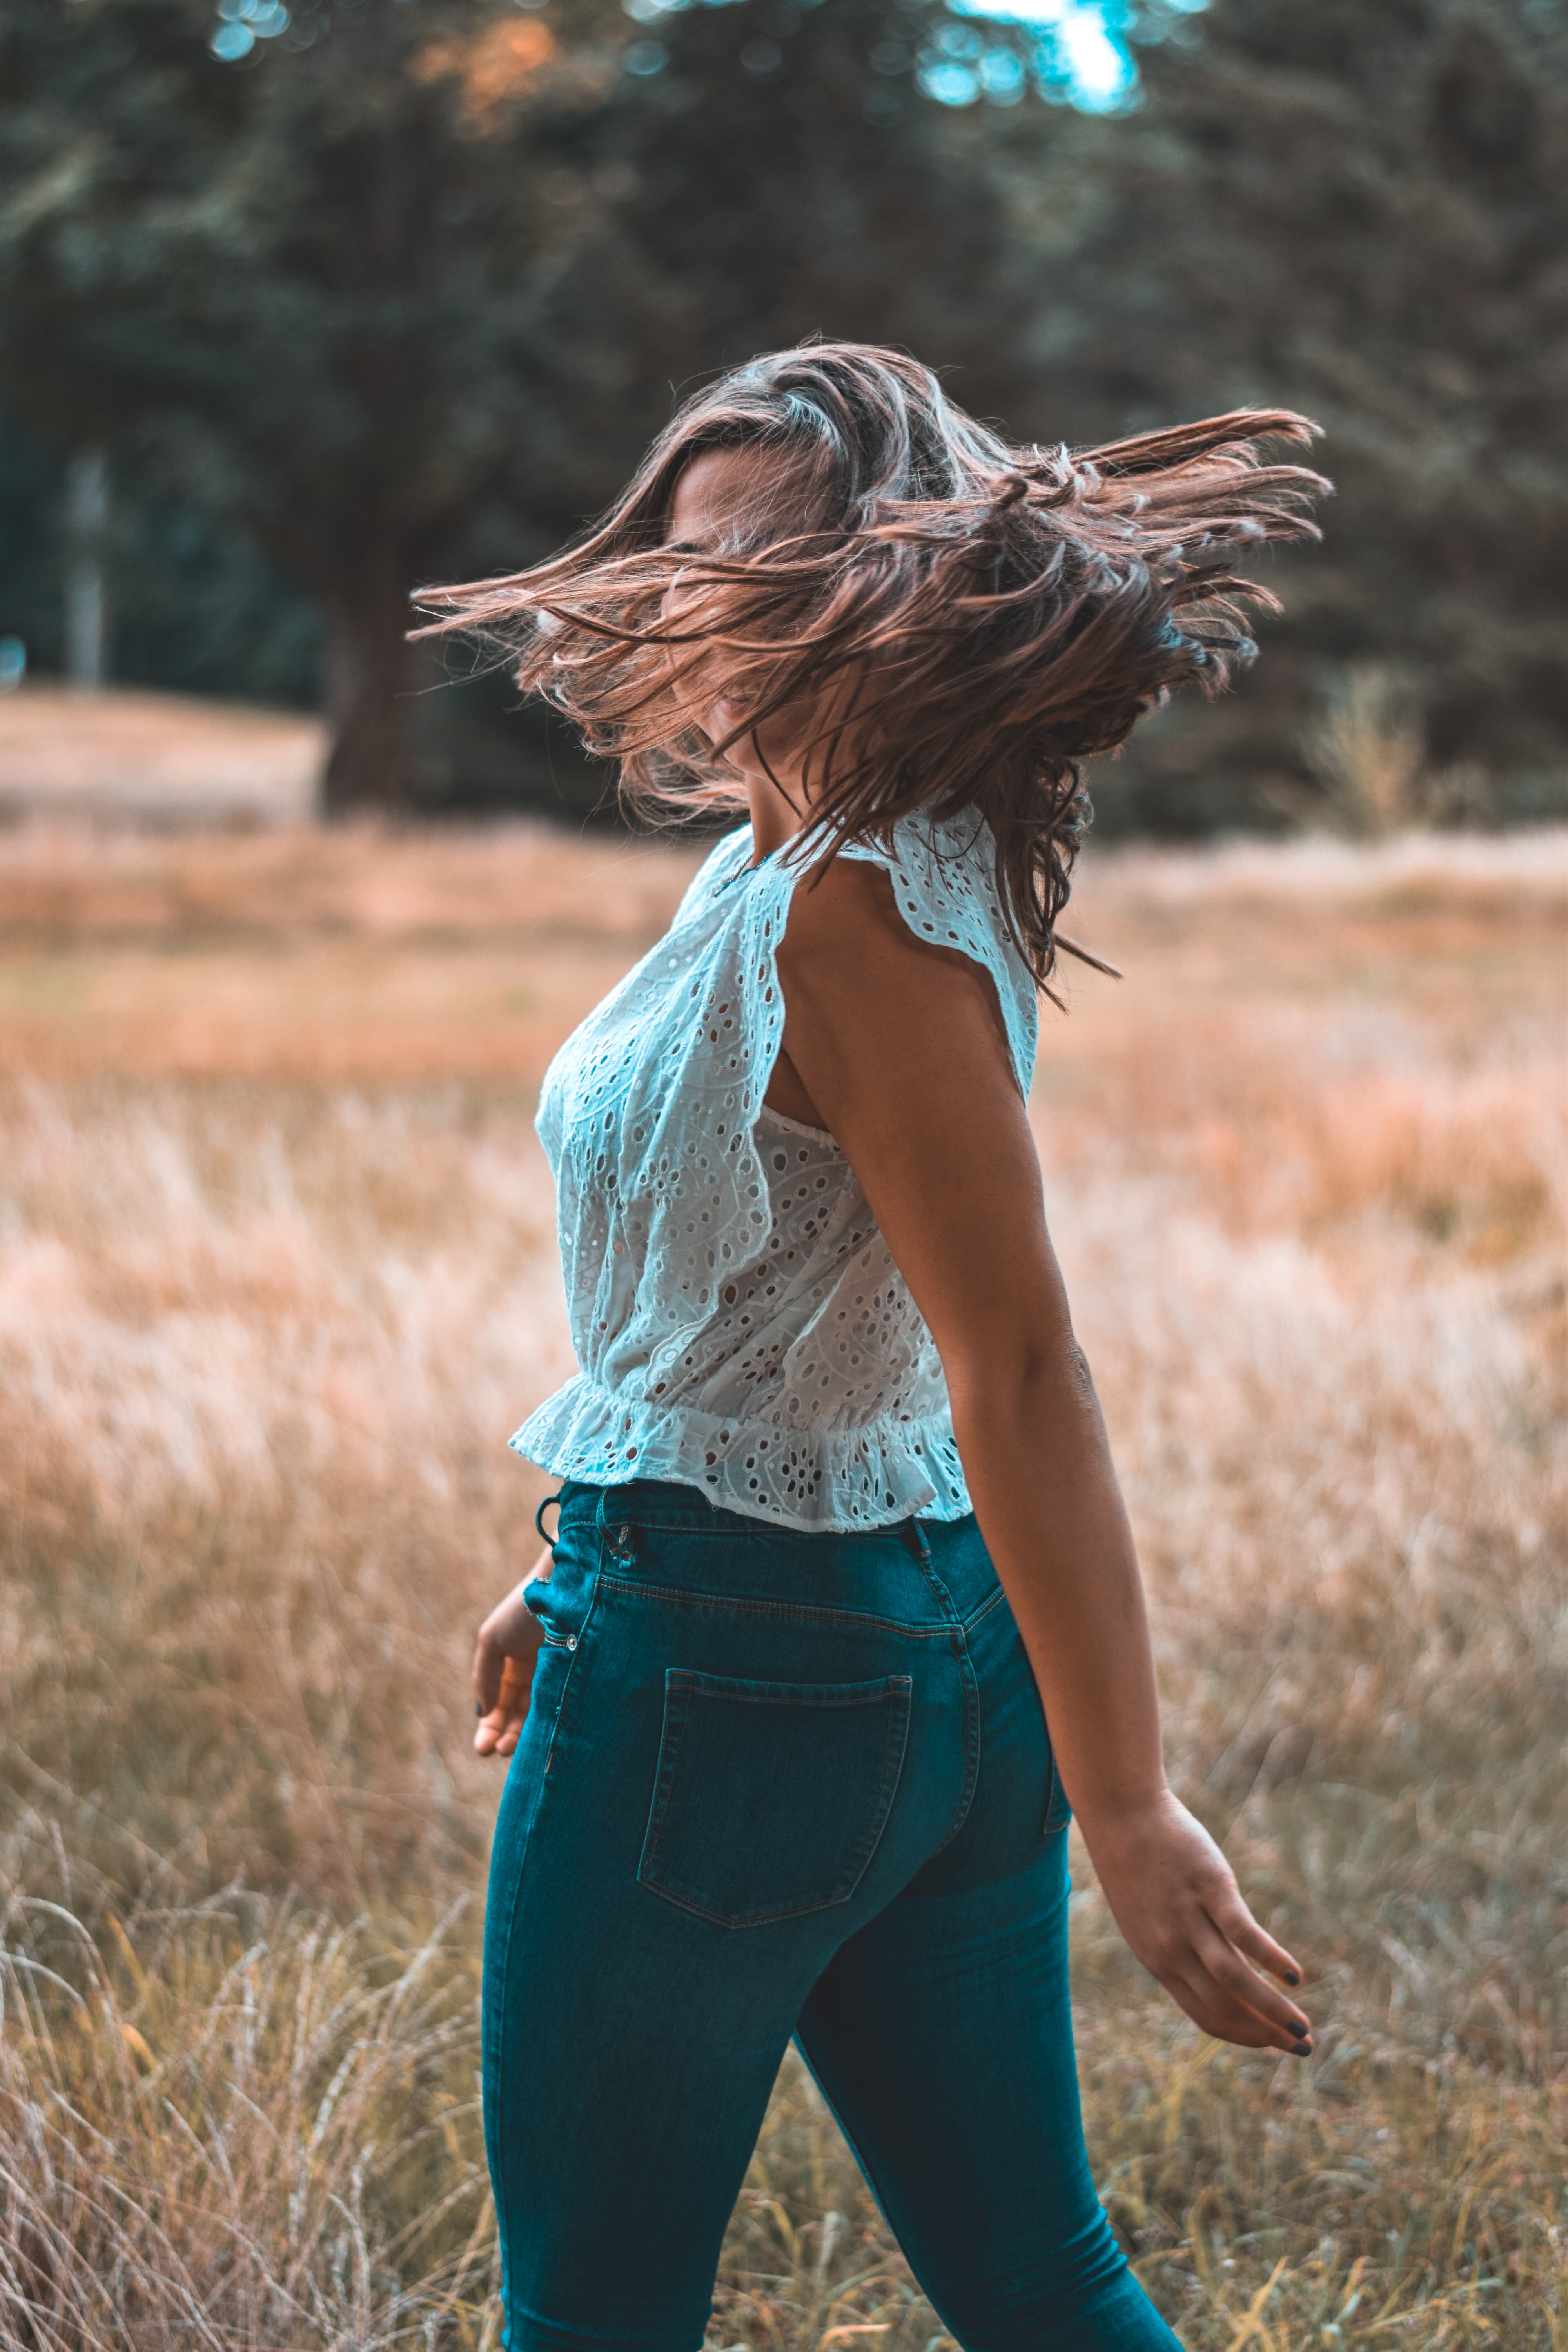 woman standing on brown grass while flipping her hair at daytime